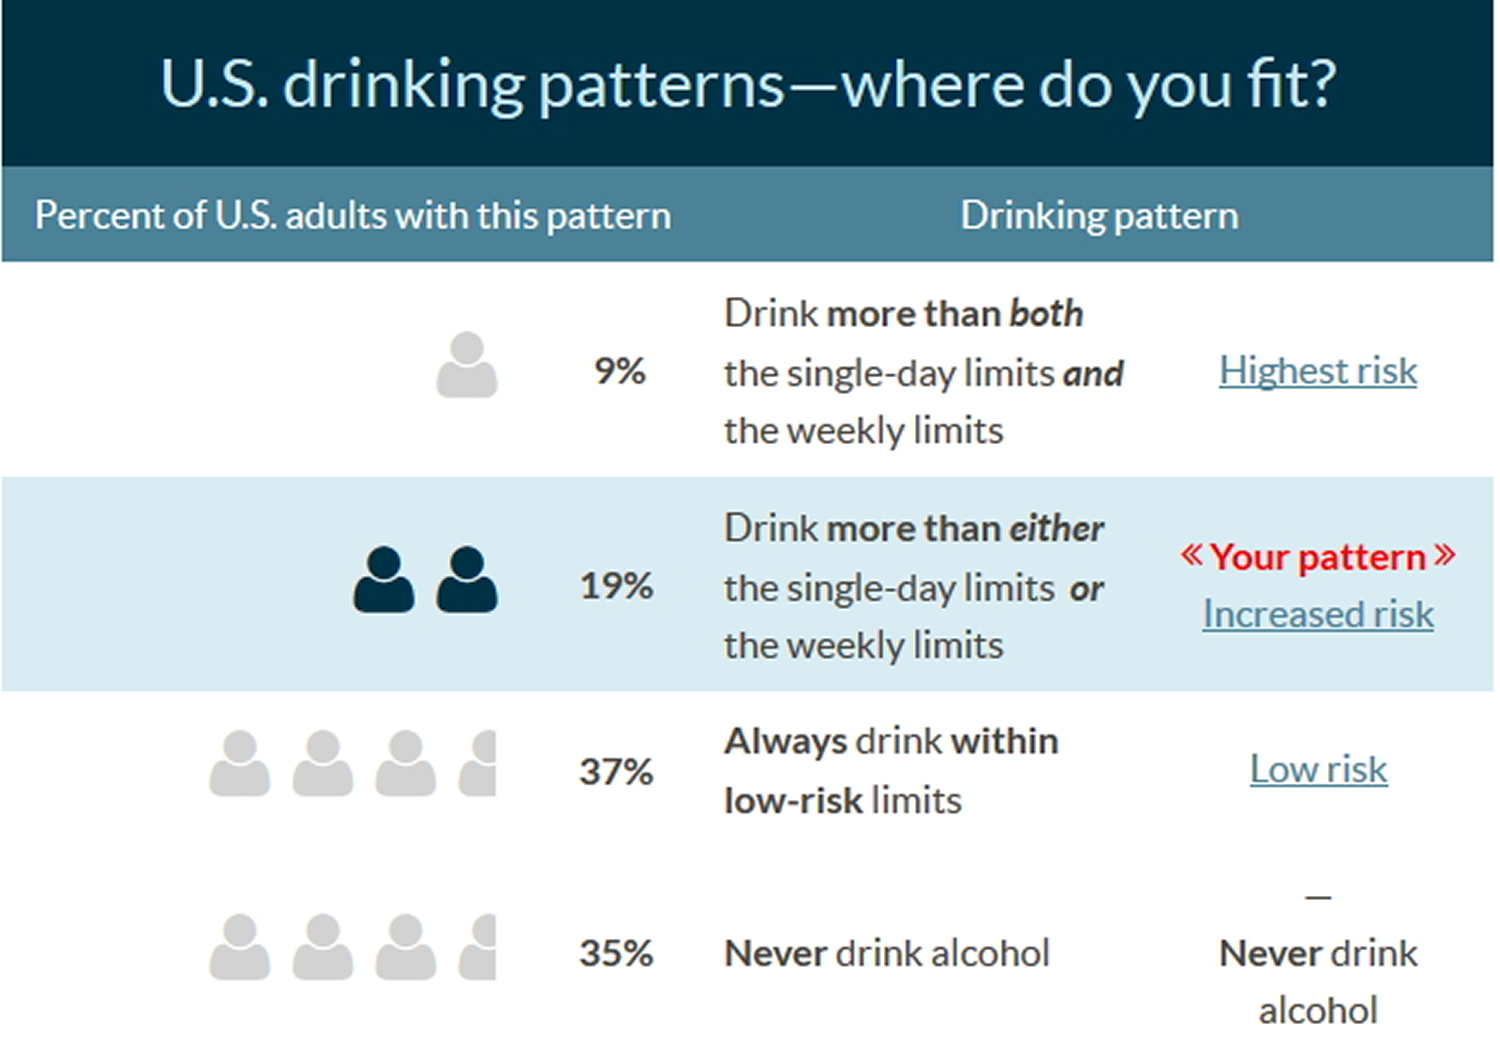 drinking patterns of US adults